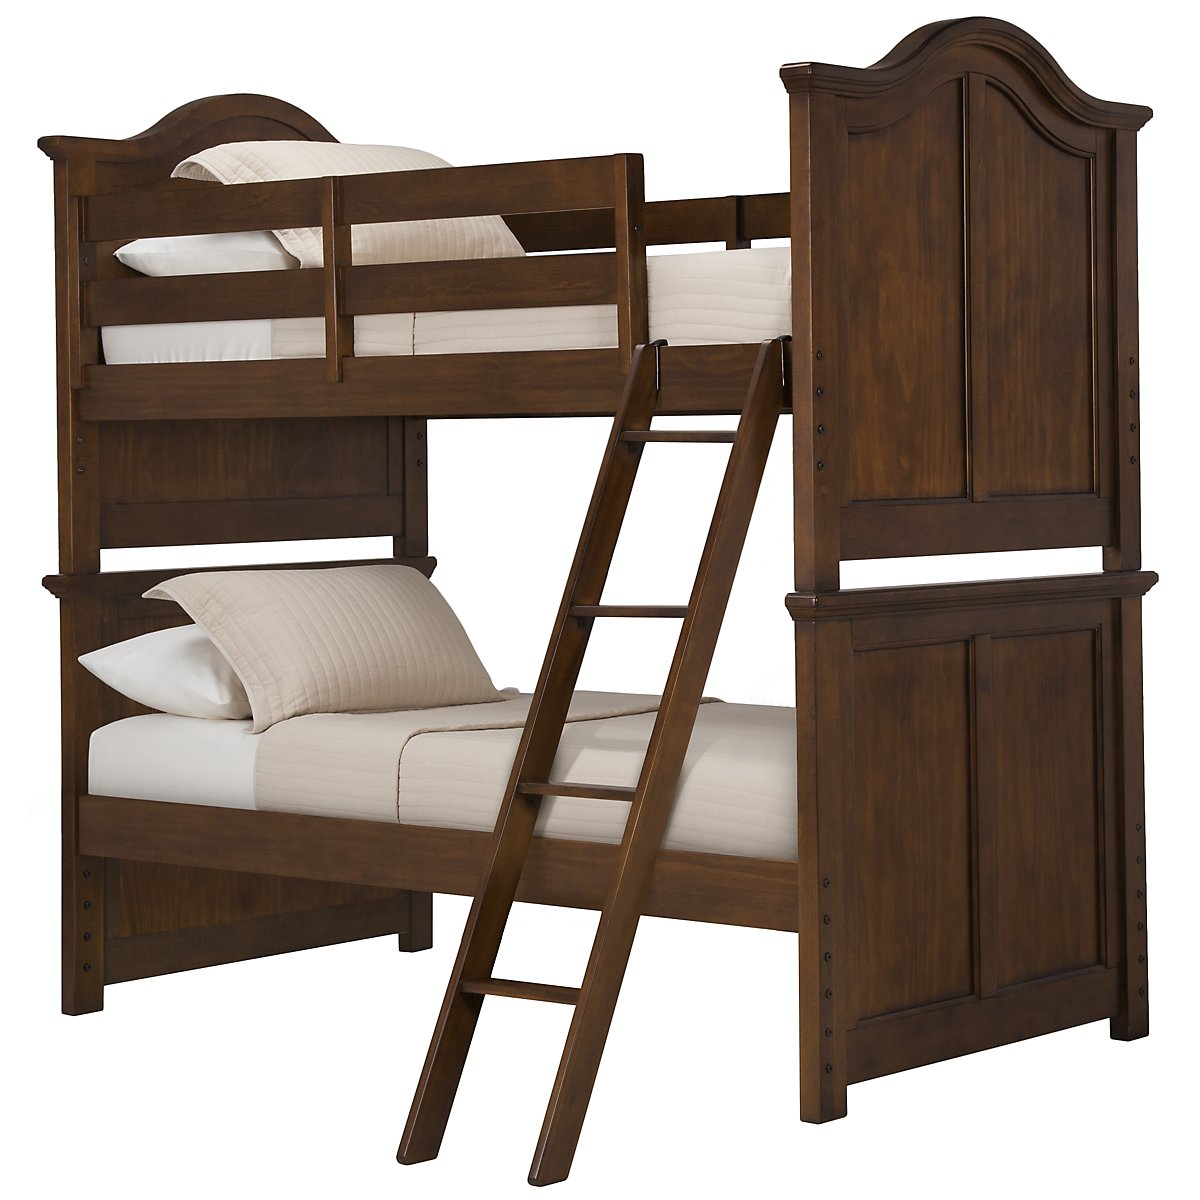 Claire Dark Tone Bunk Bed